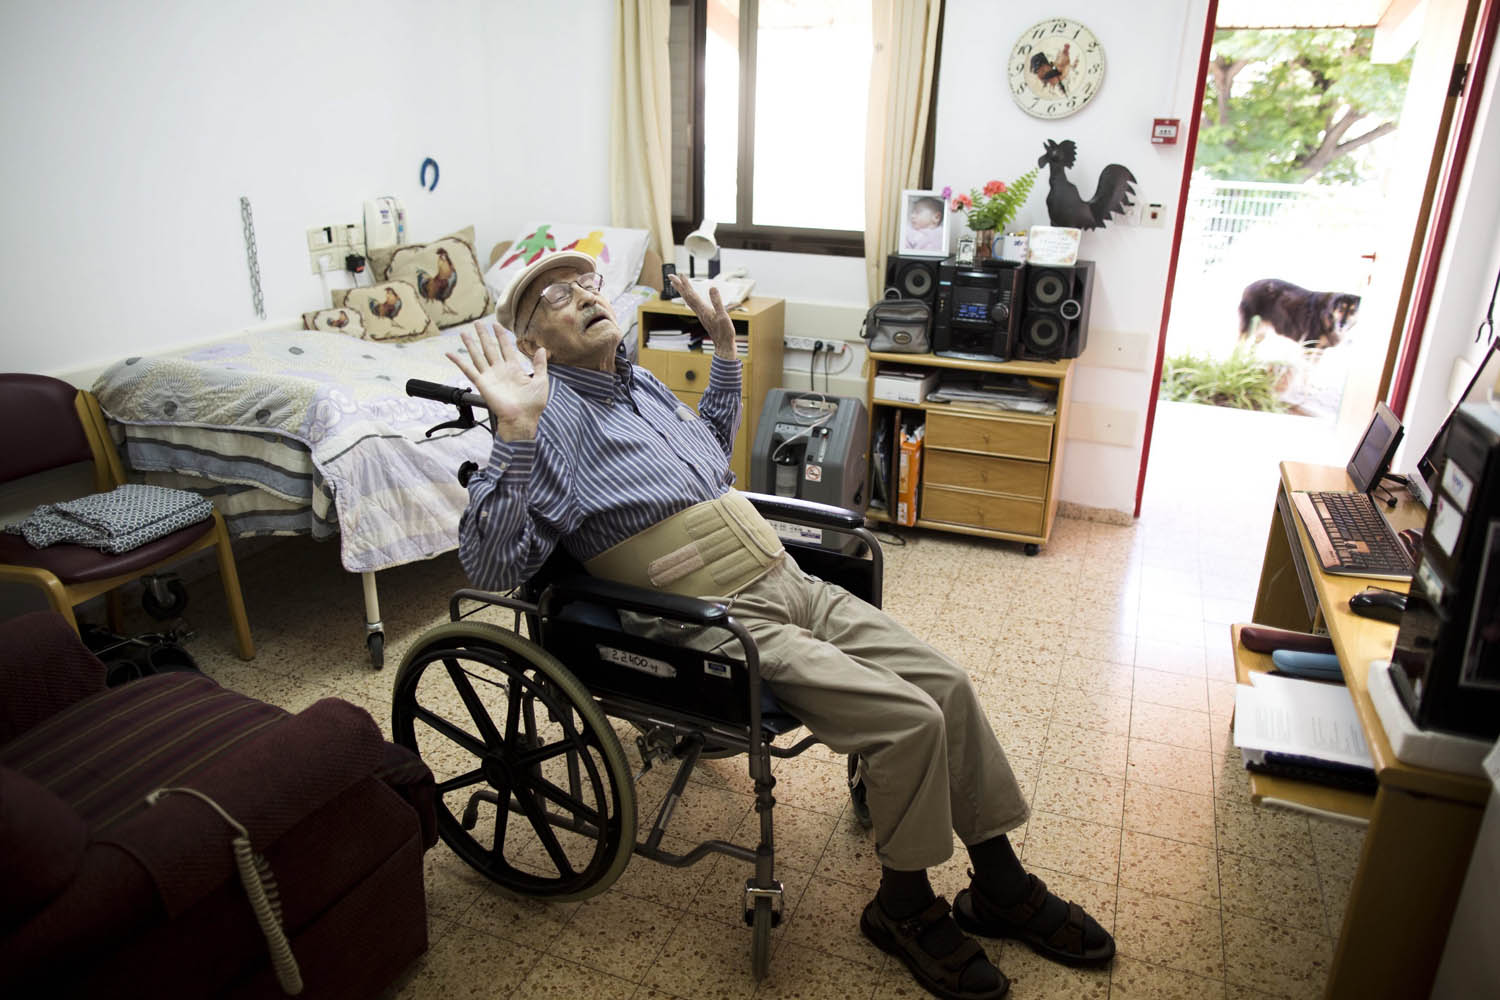 Apr. 27, 2014. Holocaust survivor Moshe Roth, 81, a writer and painter born in Nancy, France, relaxes after smoking medical marijuana in the Hadarim Nursing home in Kibbutz Naan, near Rehovot, Israel.